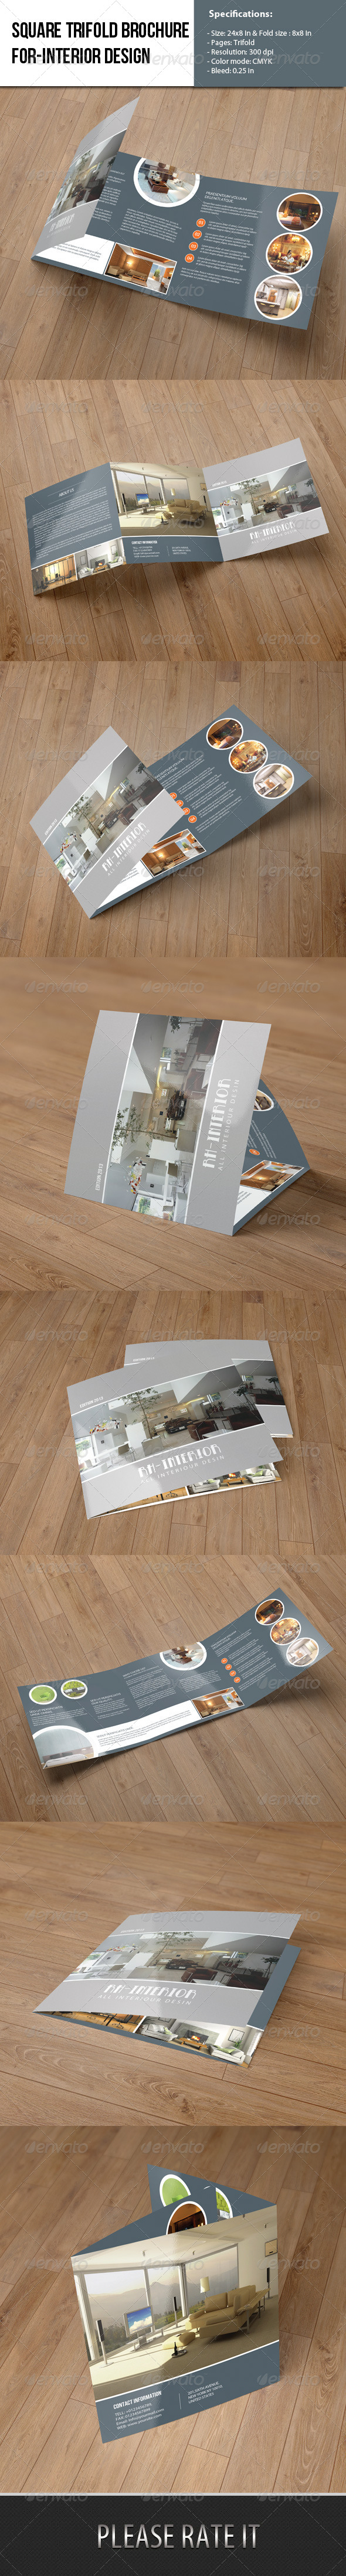 GraphicRiver Square Trifold Brochure-Interior Design 6457727